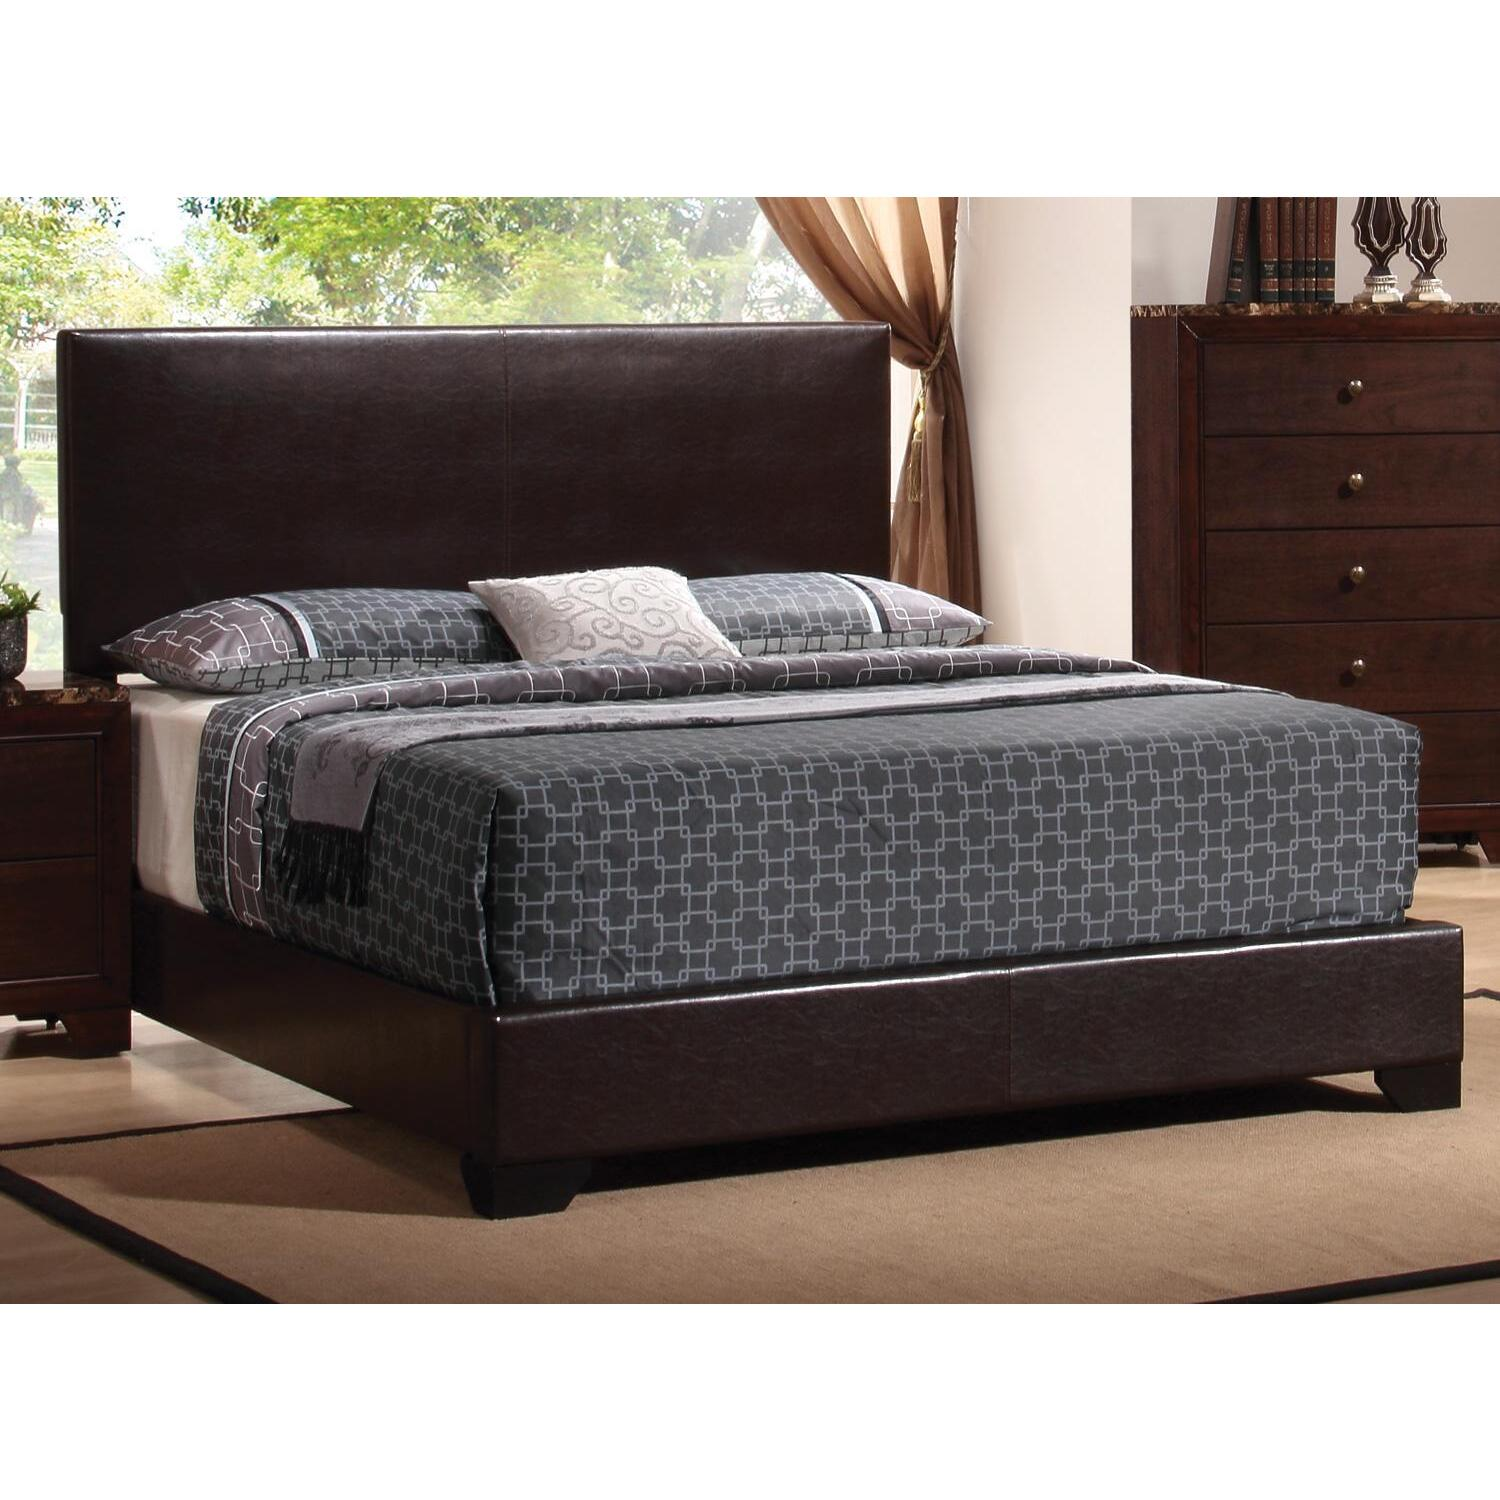 Conner Upholstered Low Profile Bed Ojcommerce